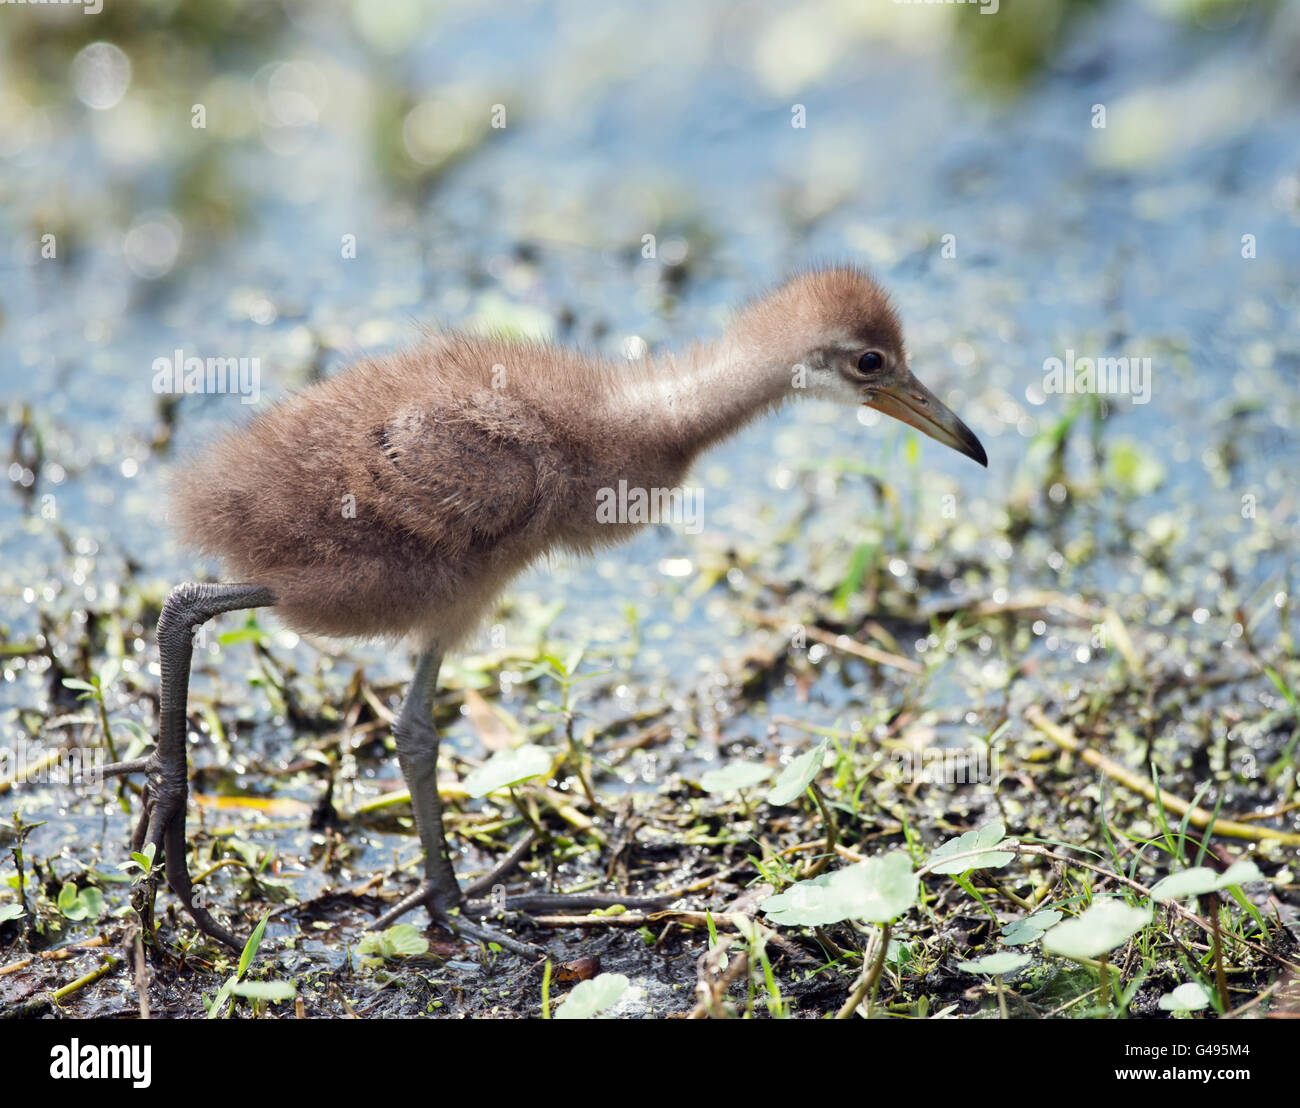 Limpkin Chick in Florida Wetlands - Stock Image